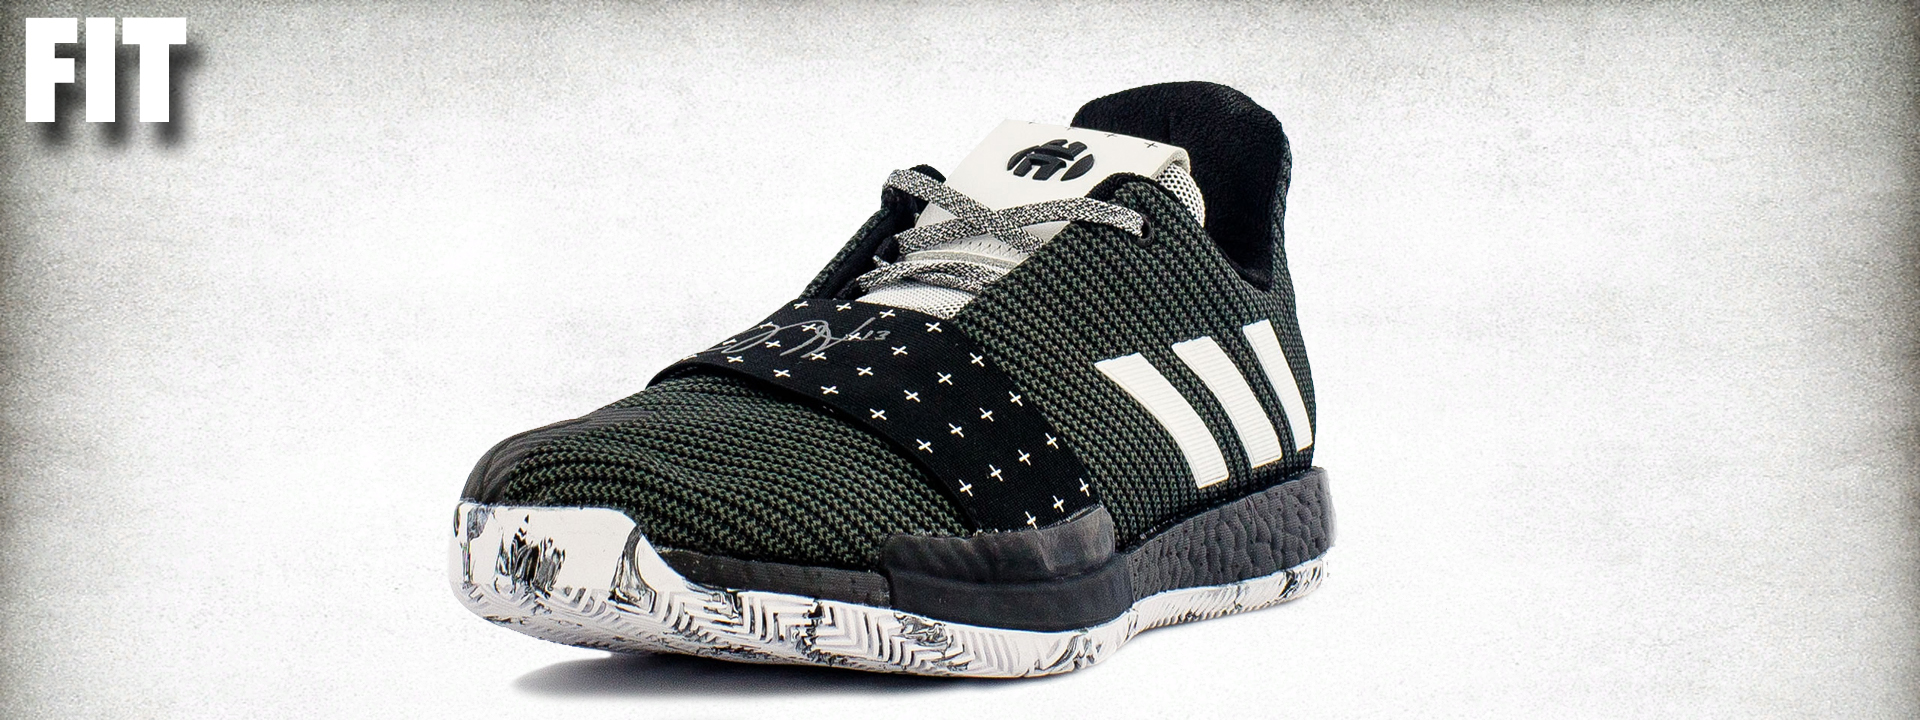 340a378e301 adidas-Harden-Vol-3-Performance-Review-Fit - WearTesters